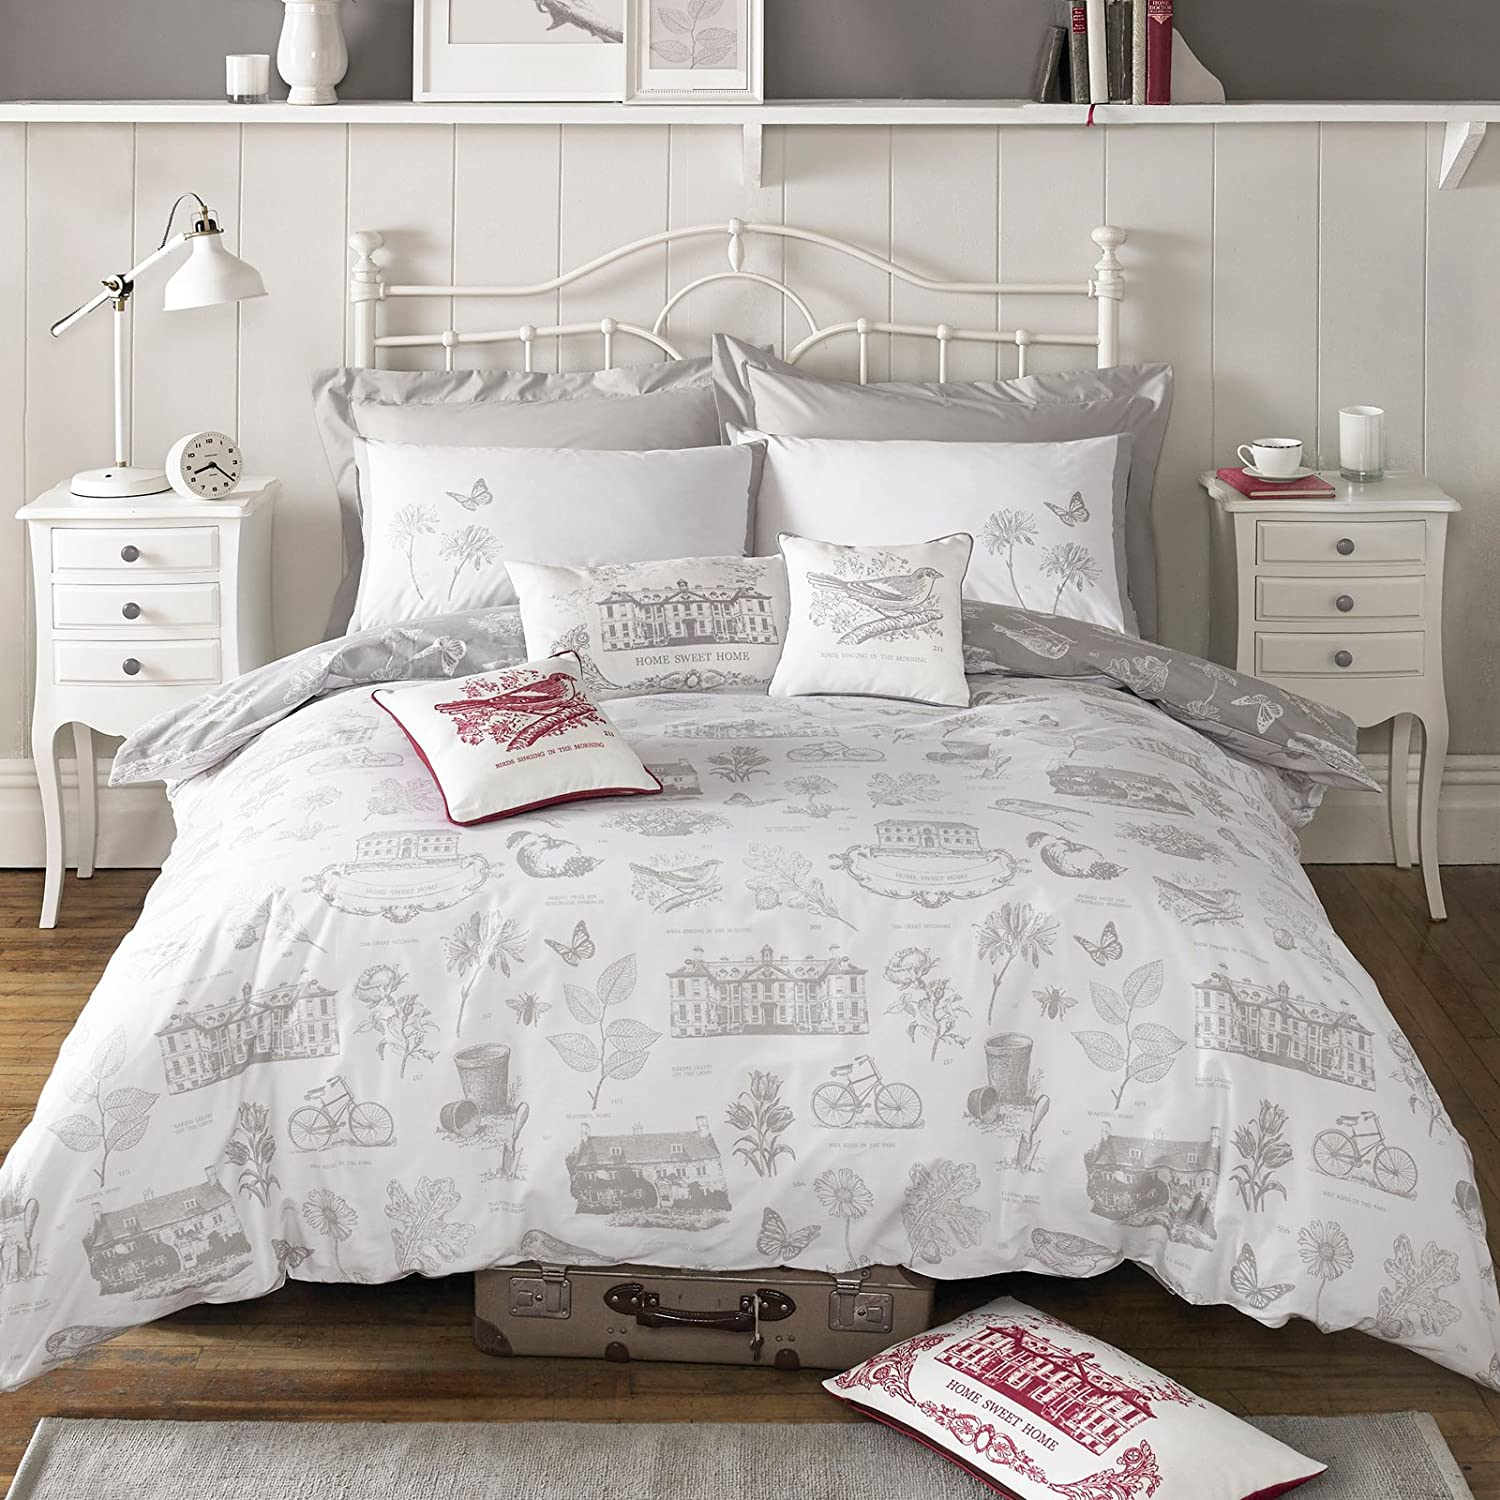 duvet cover queen light s xl full nz set grey single double twin